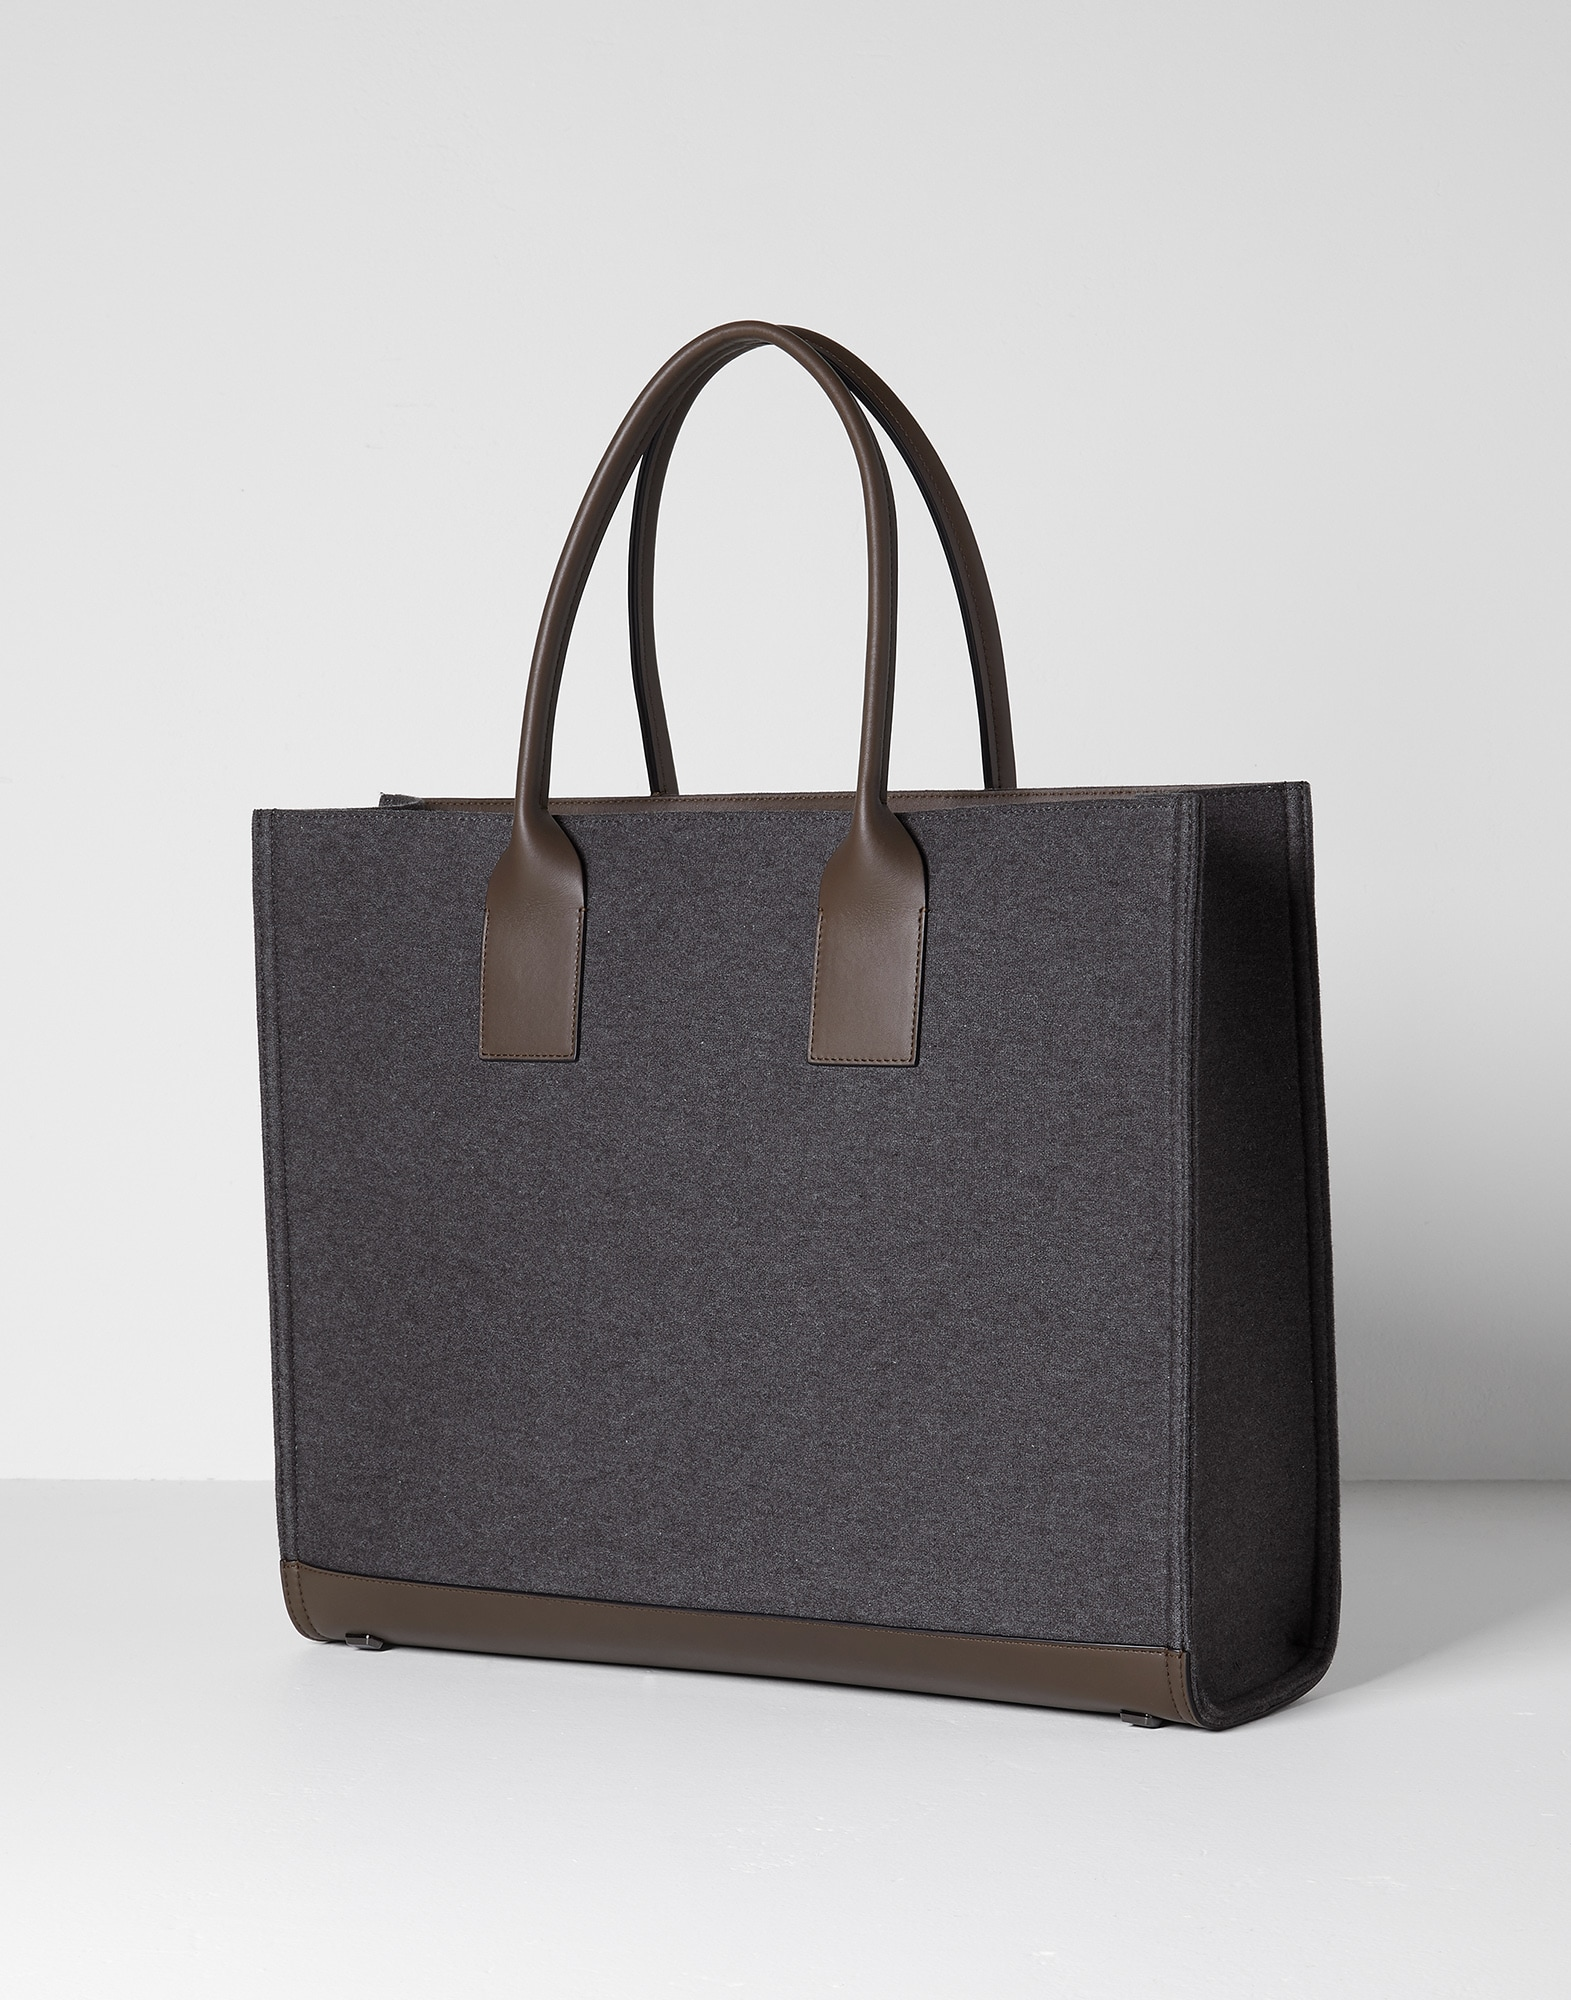 Shopper Bag Dark Grey Woman 1 - Brunello Cucinelli